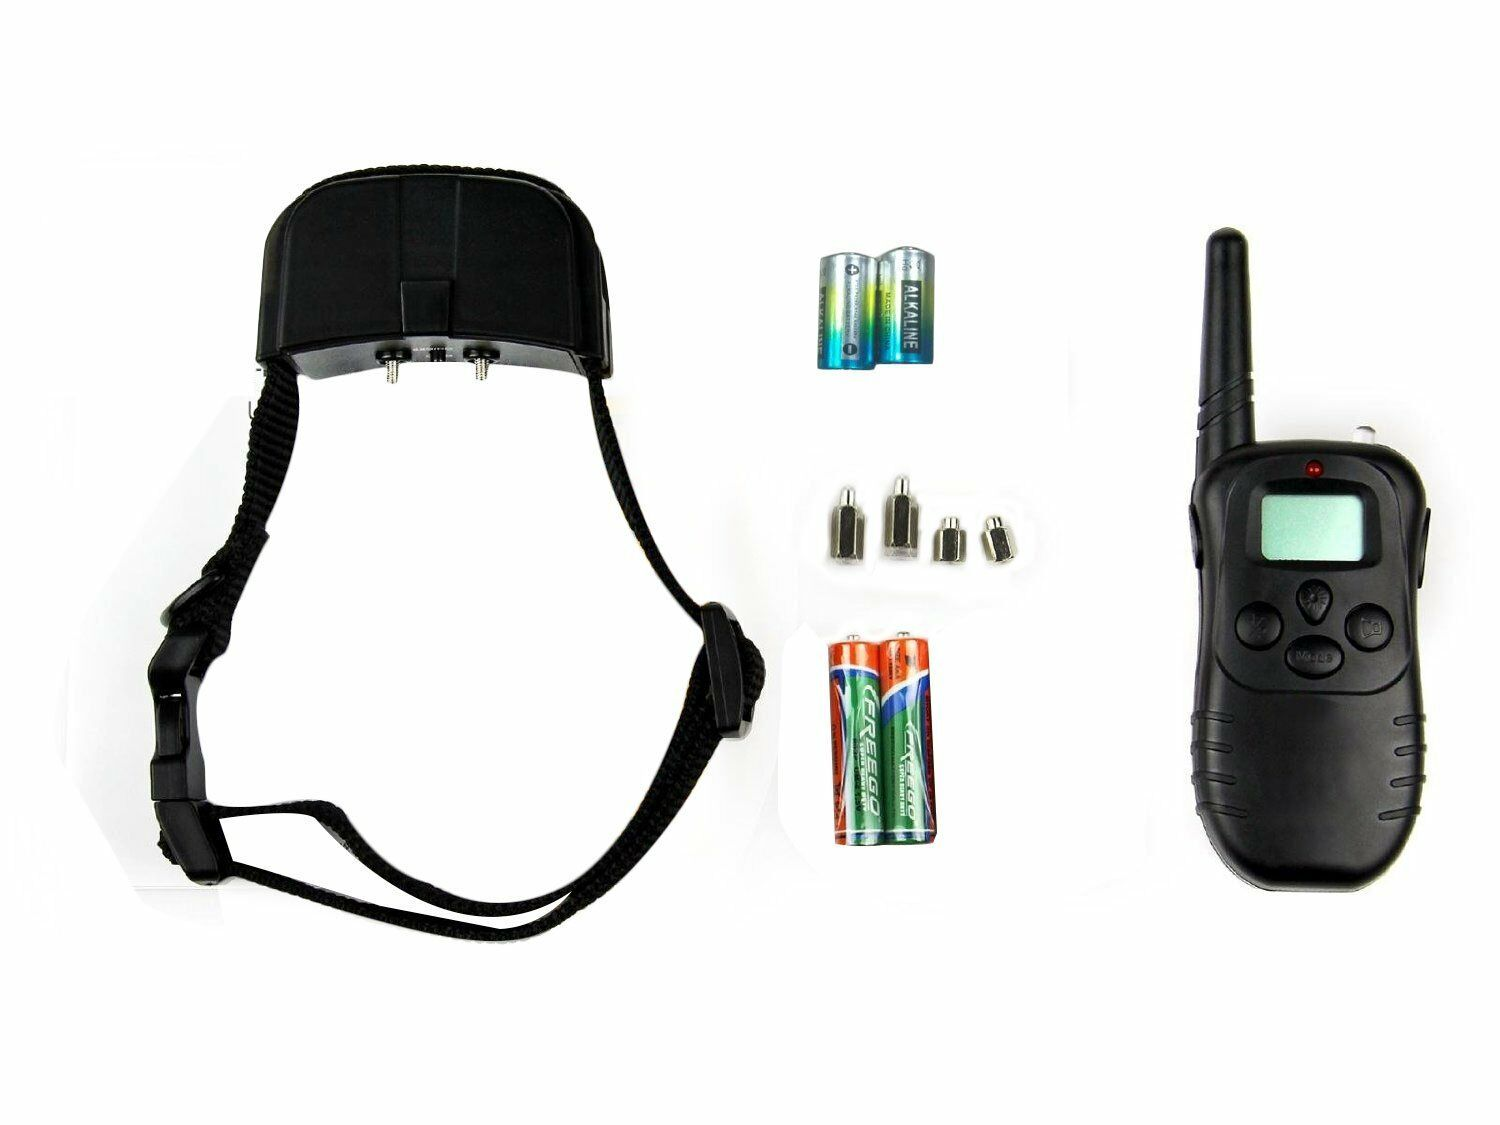 Image 41 - Remote-LCD-100LV-300M-Electric-Shock-Vibrate-Pet-Dog-Training-Collar-Waterproof